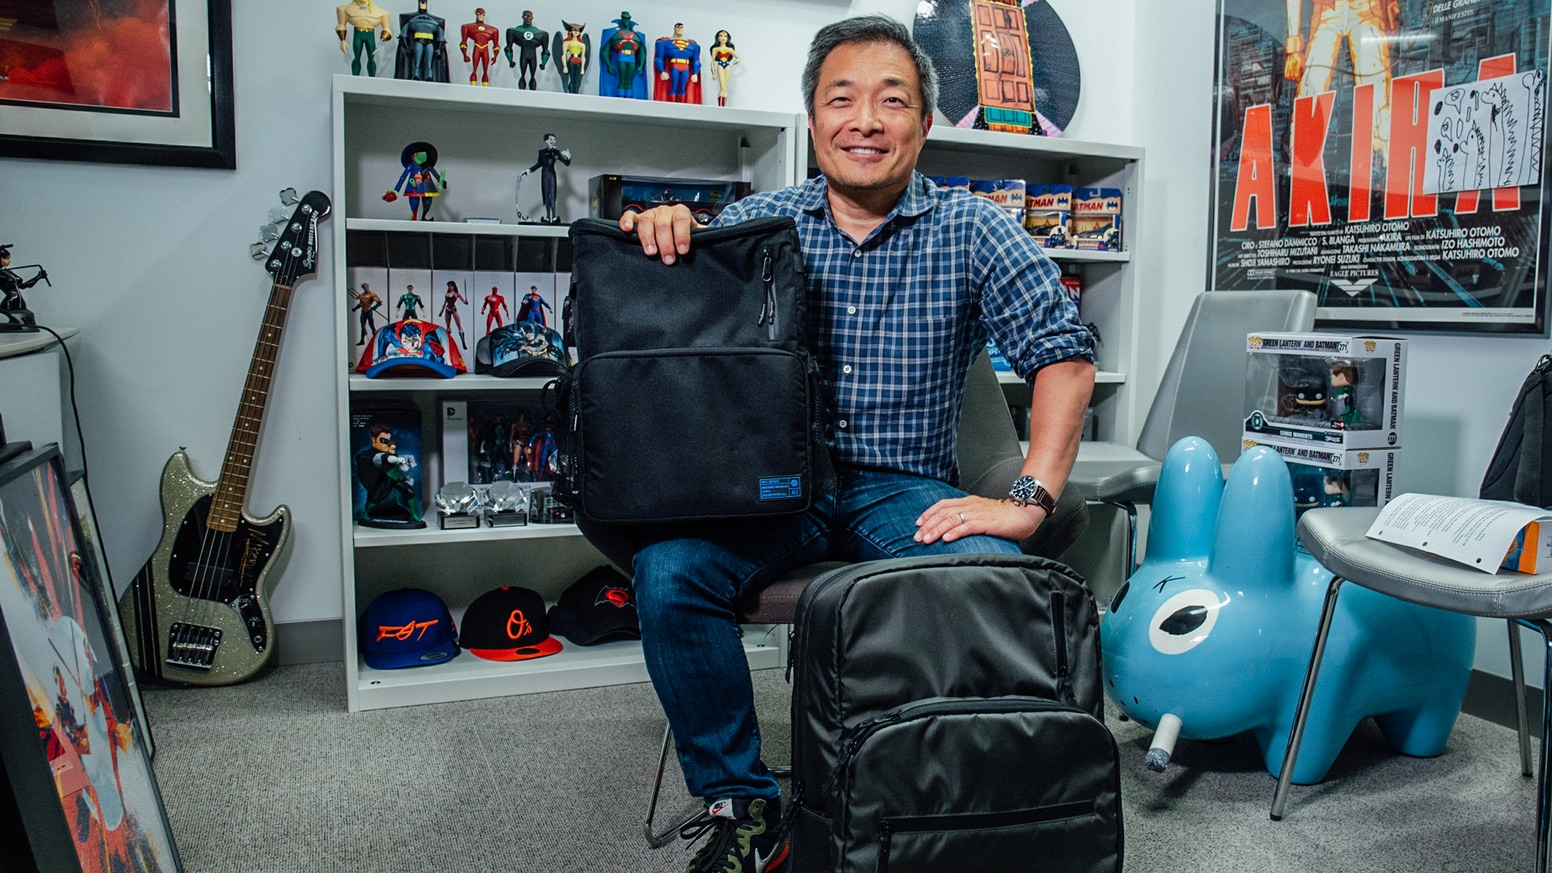 Innovative bags for artists and comic collectors designed with Jim Lee of DC Comics